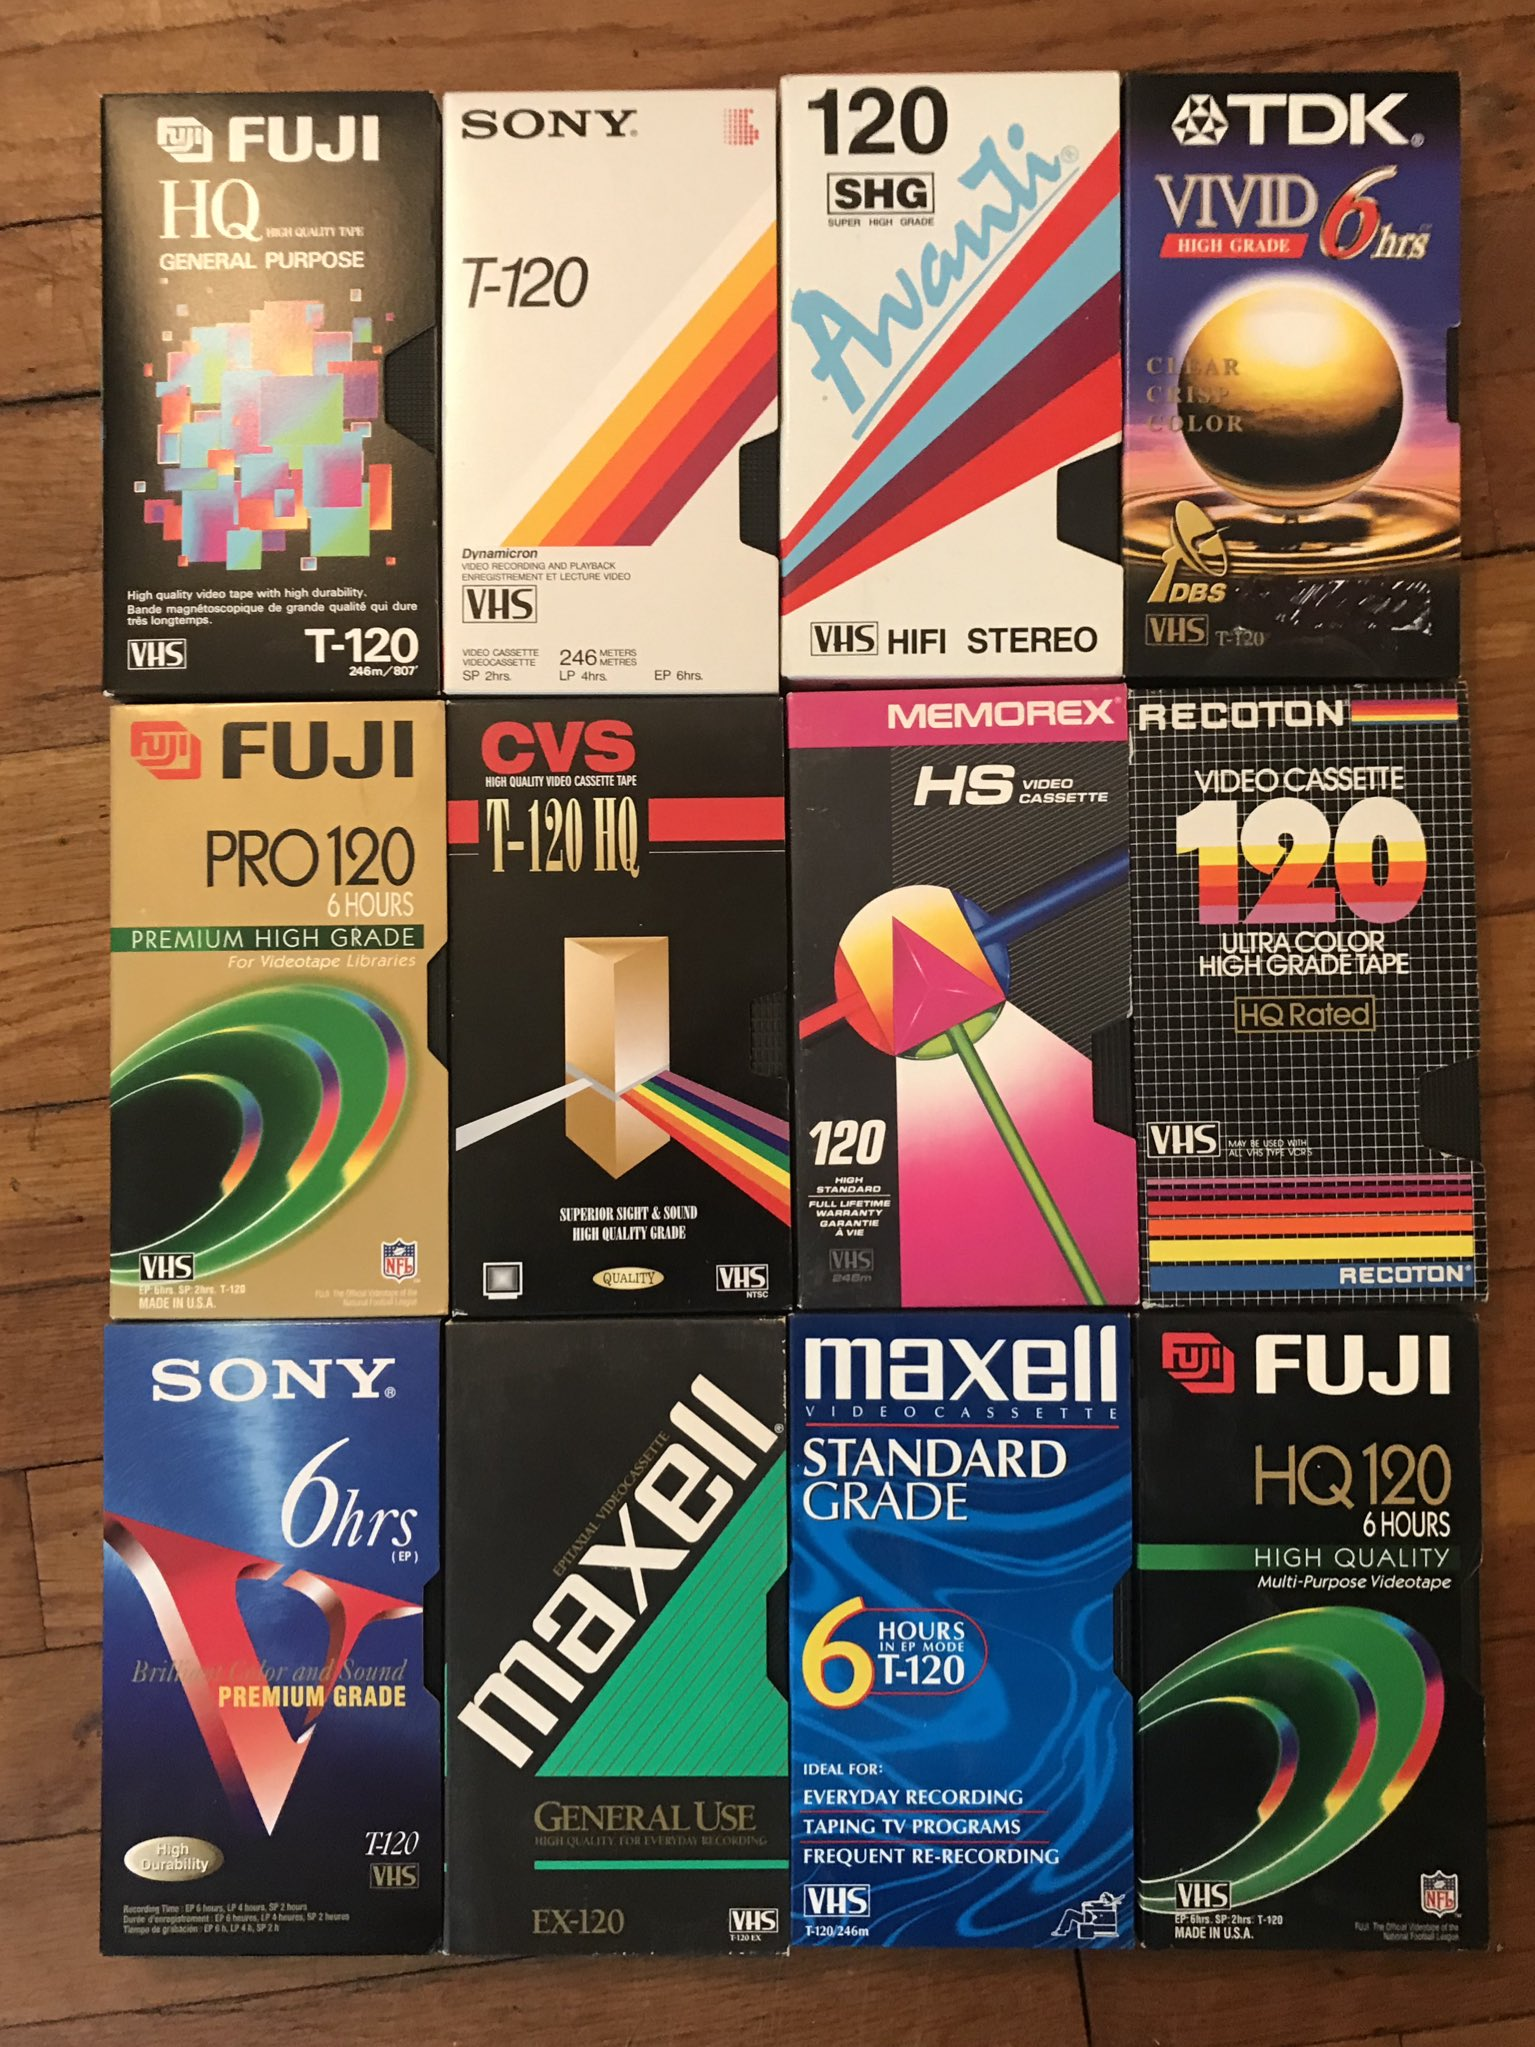 Let's all take a moment to appreciate blank VHS cassette packaging design trends. �� https://t.co/XnMeS9gsab